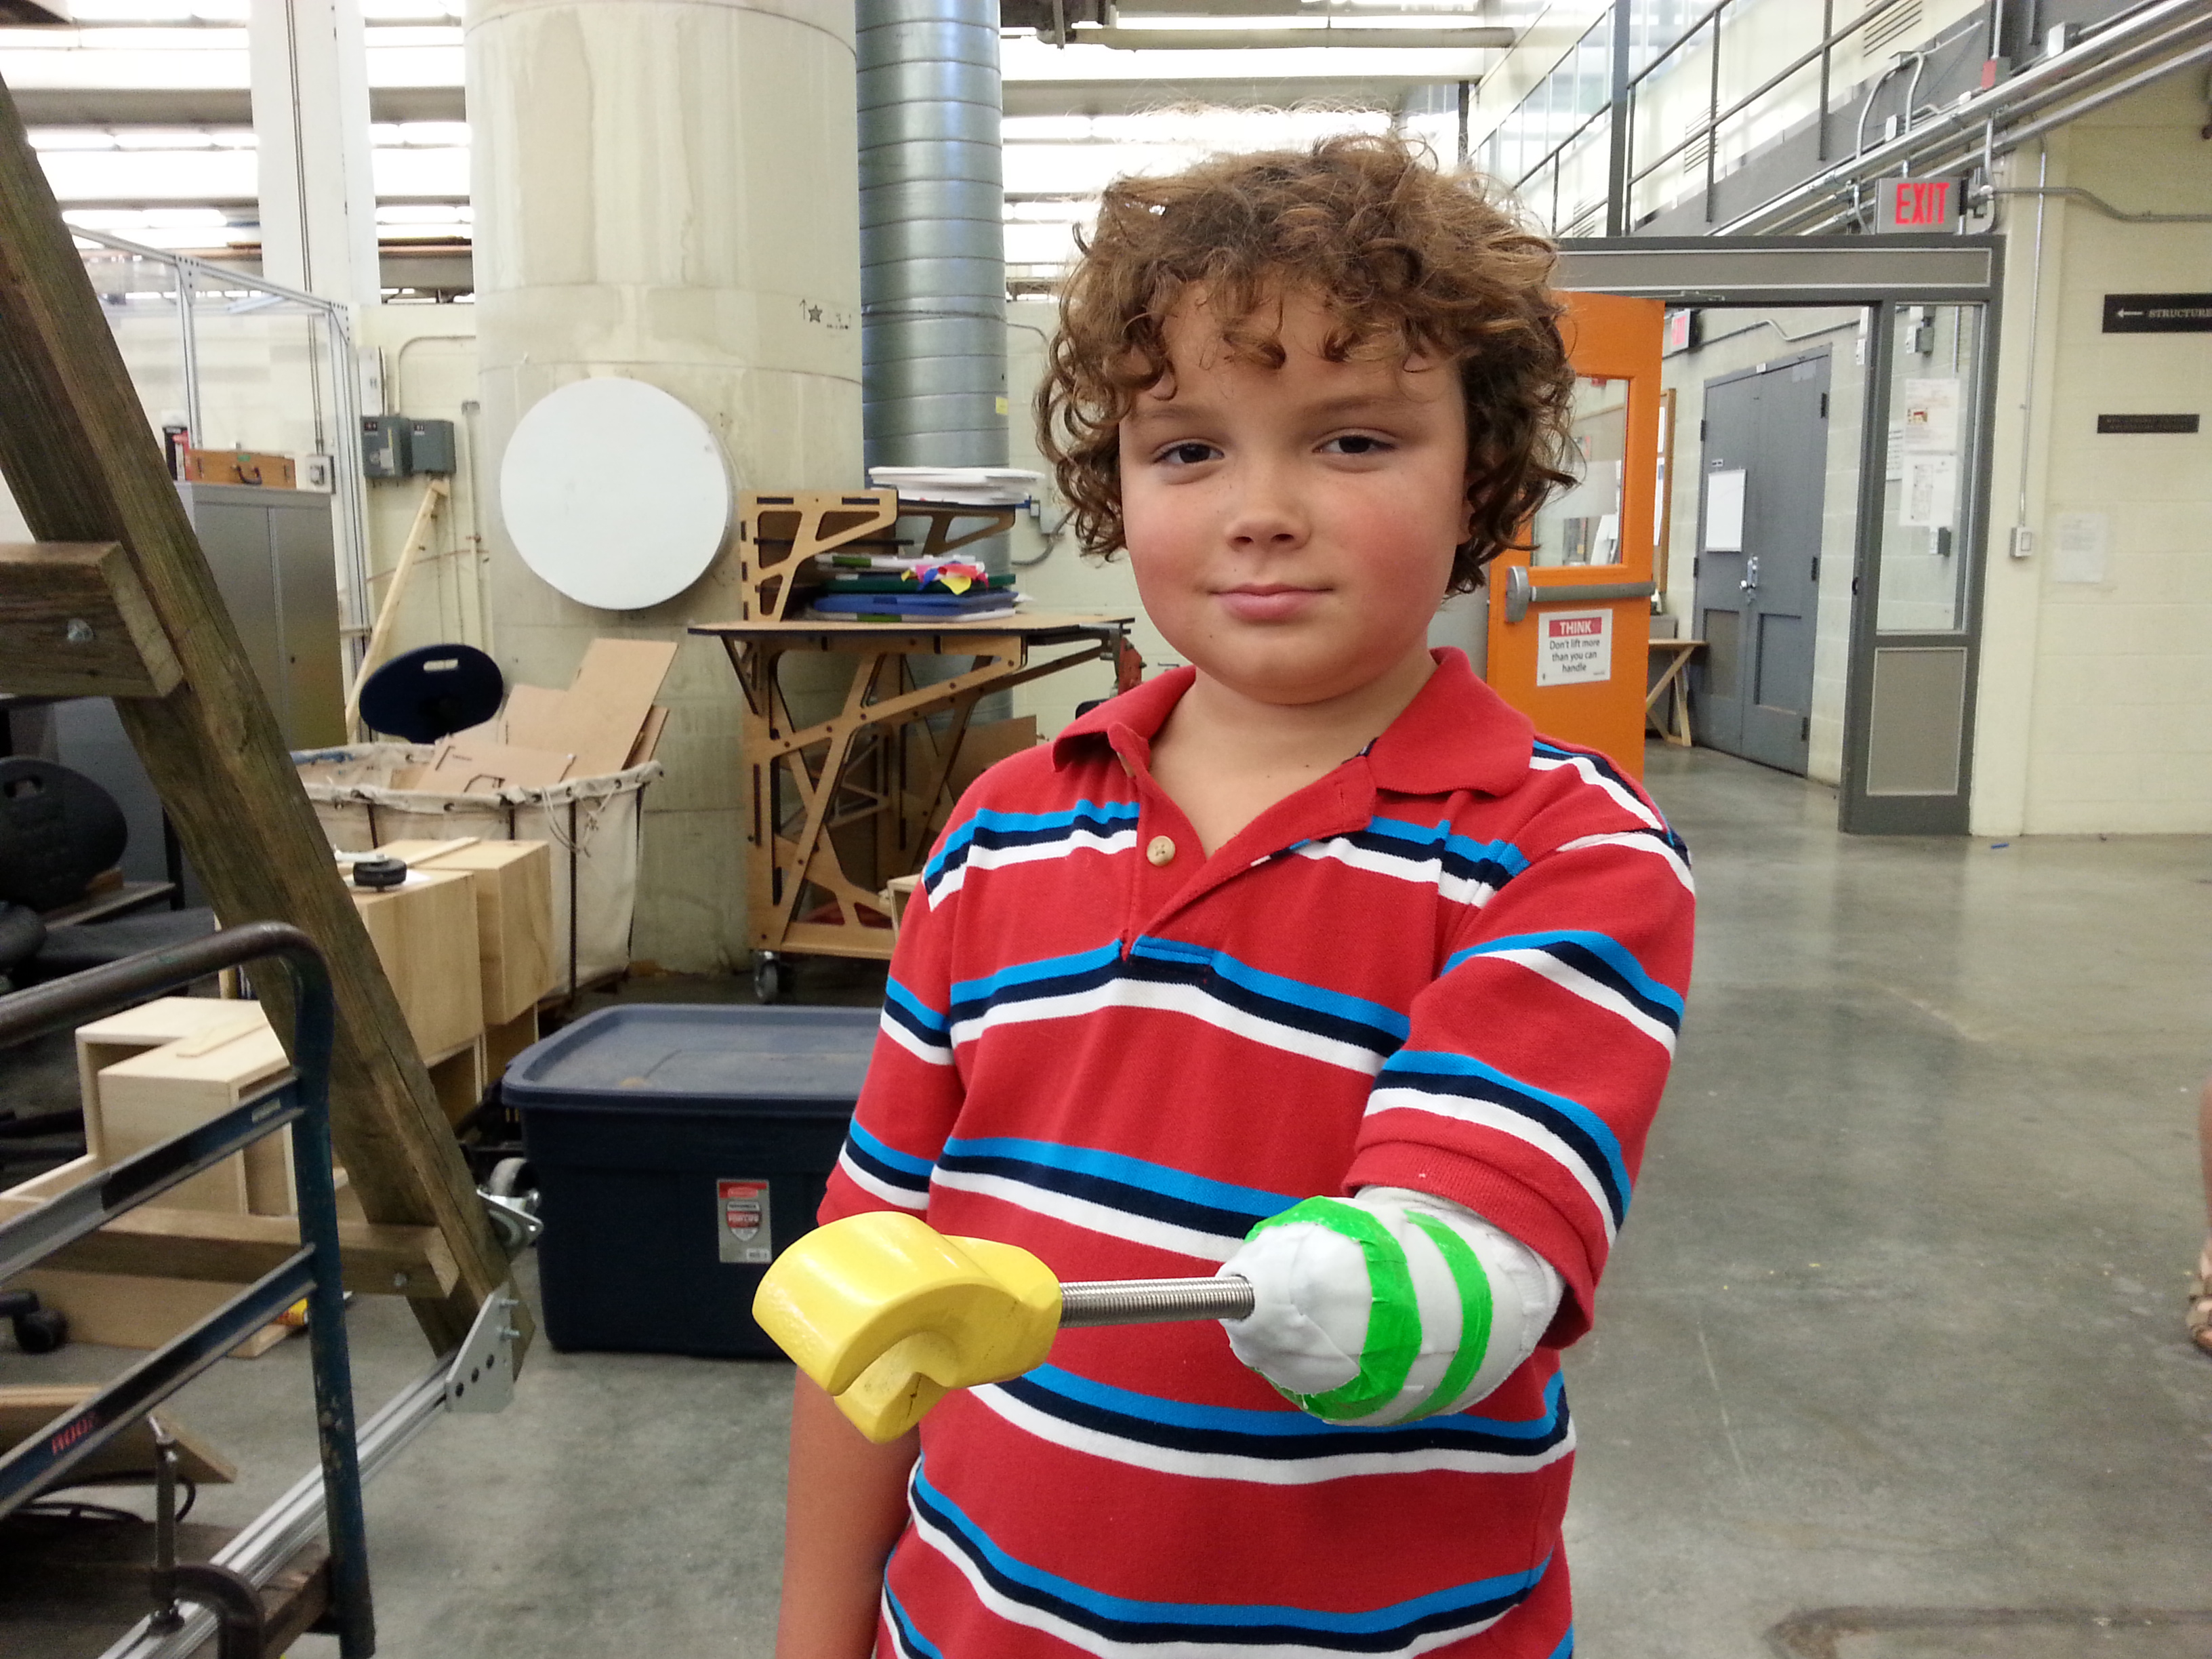 This is the prototype Aidan made during his time at the Superhero Cyborgs summer camp.